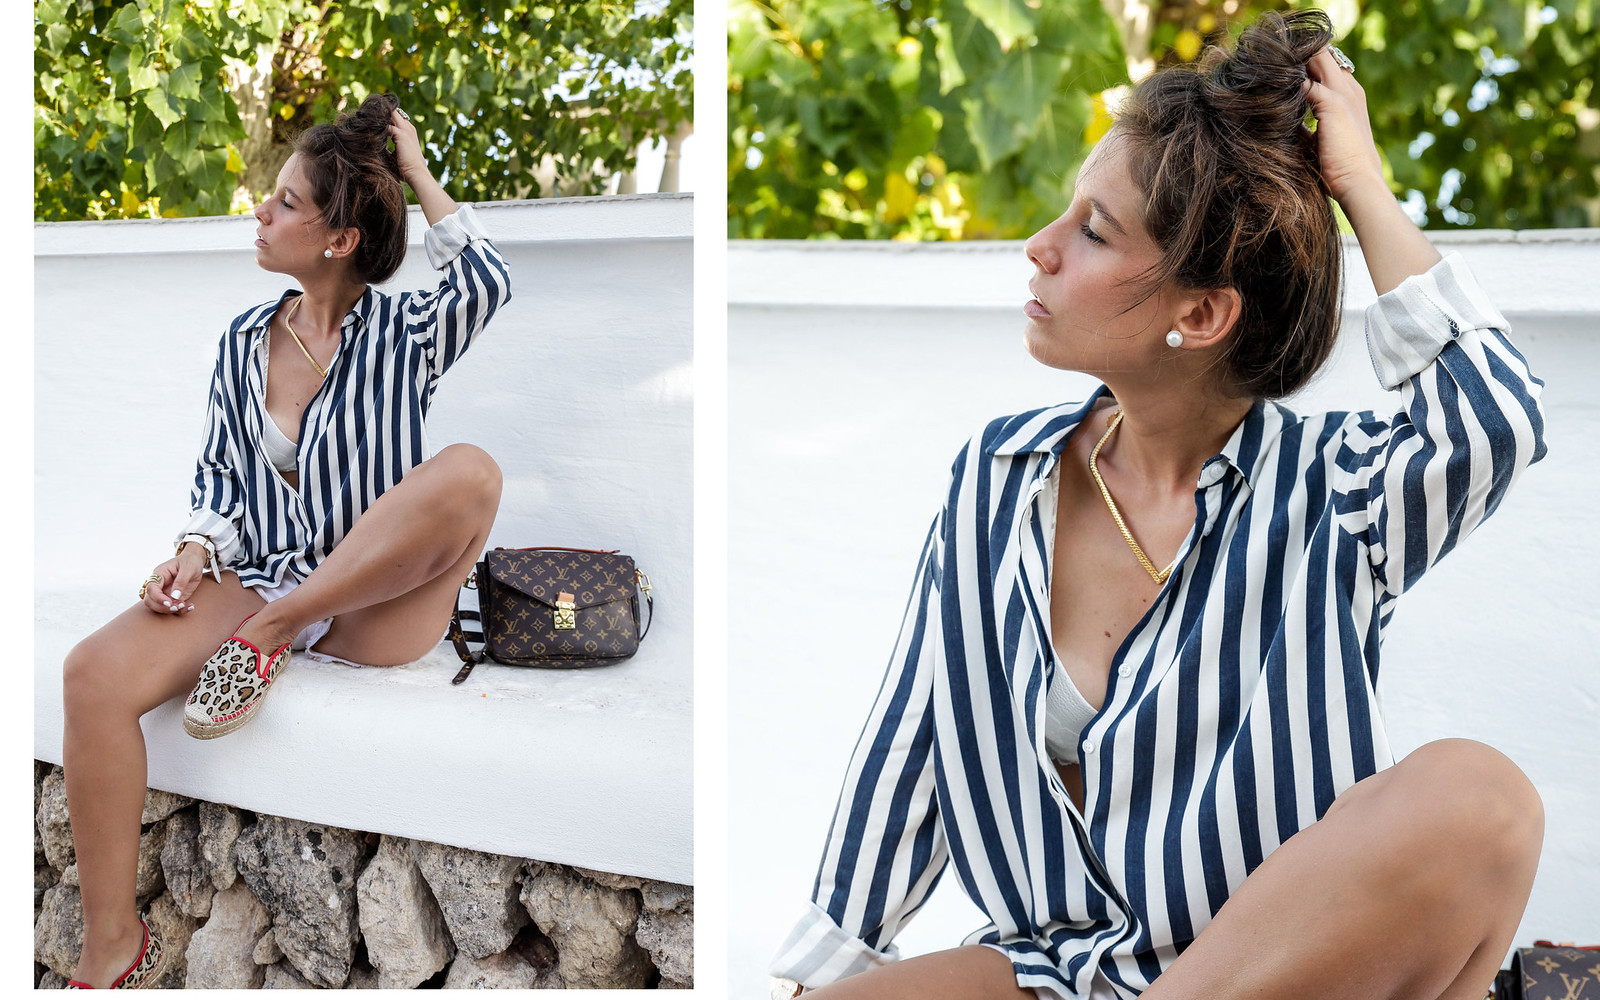 05_Leopard_and_stripes_perfec_mix_print_outfit_THEGUESTGIRL_menorca_look